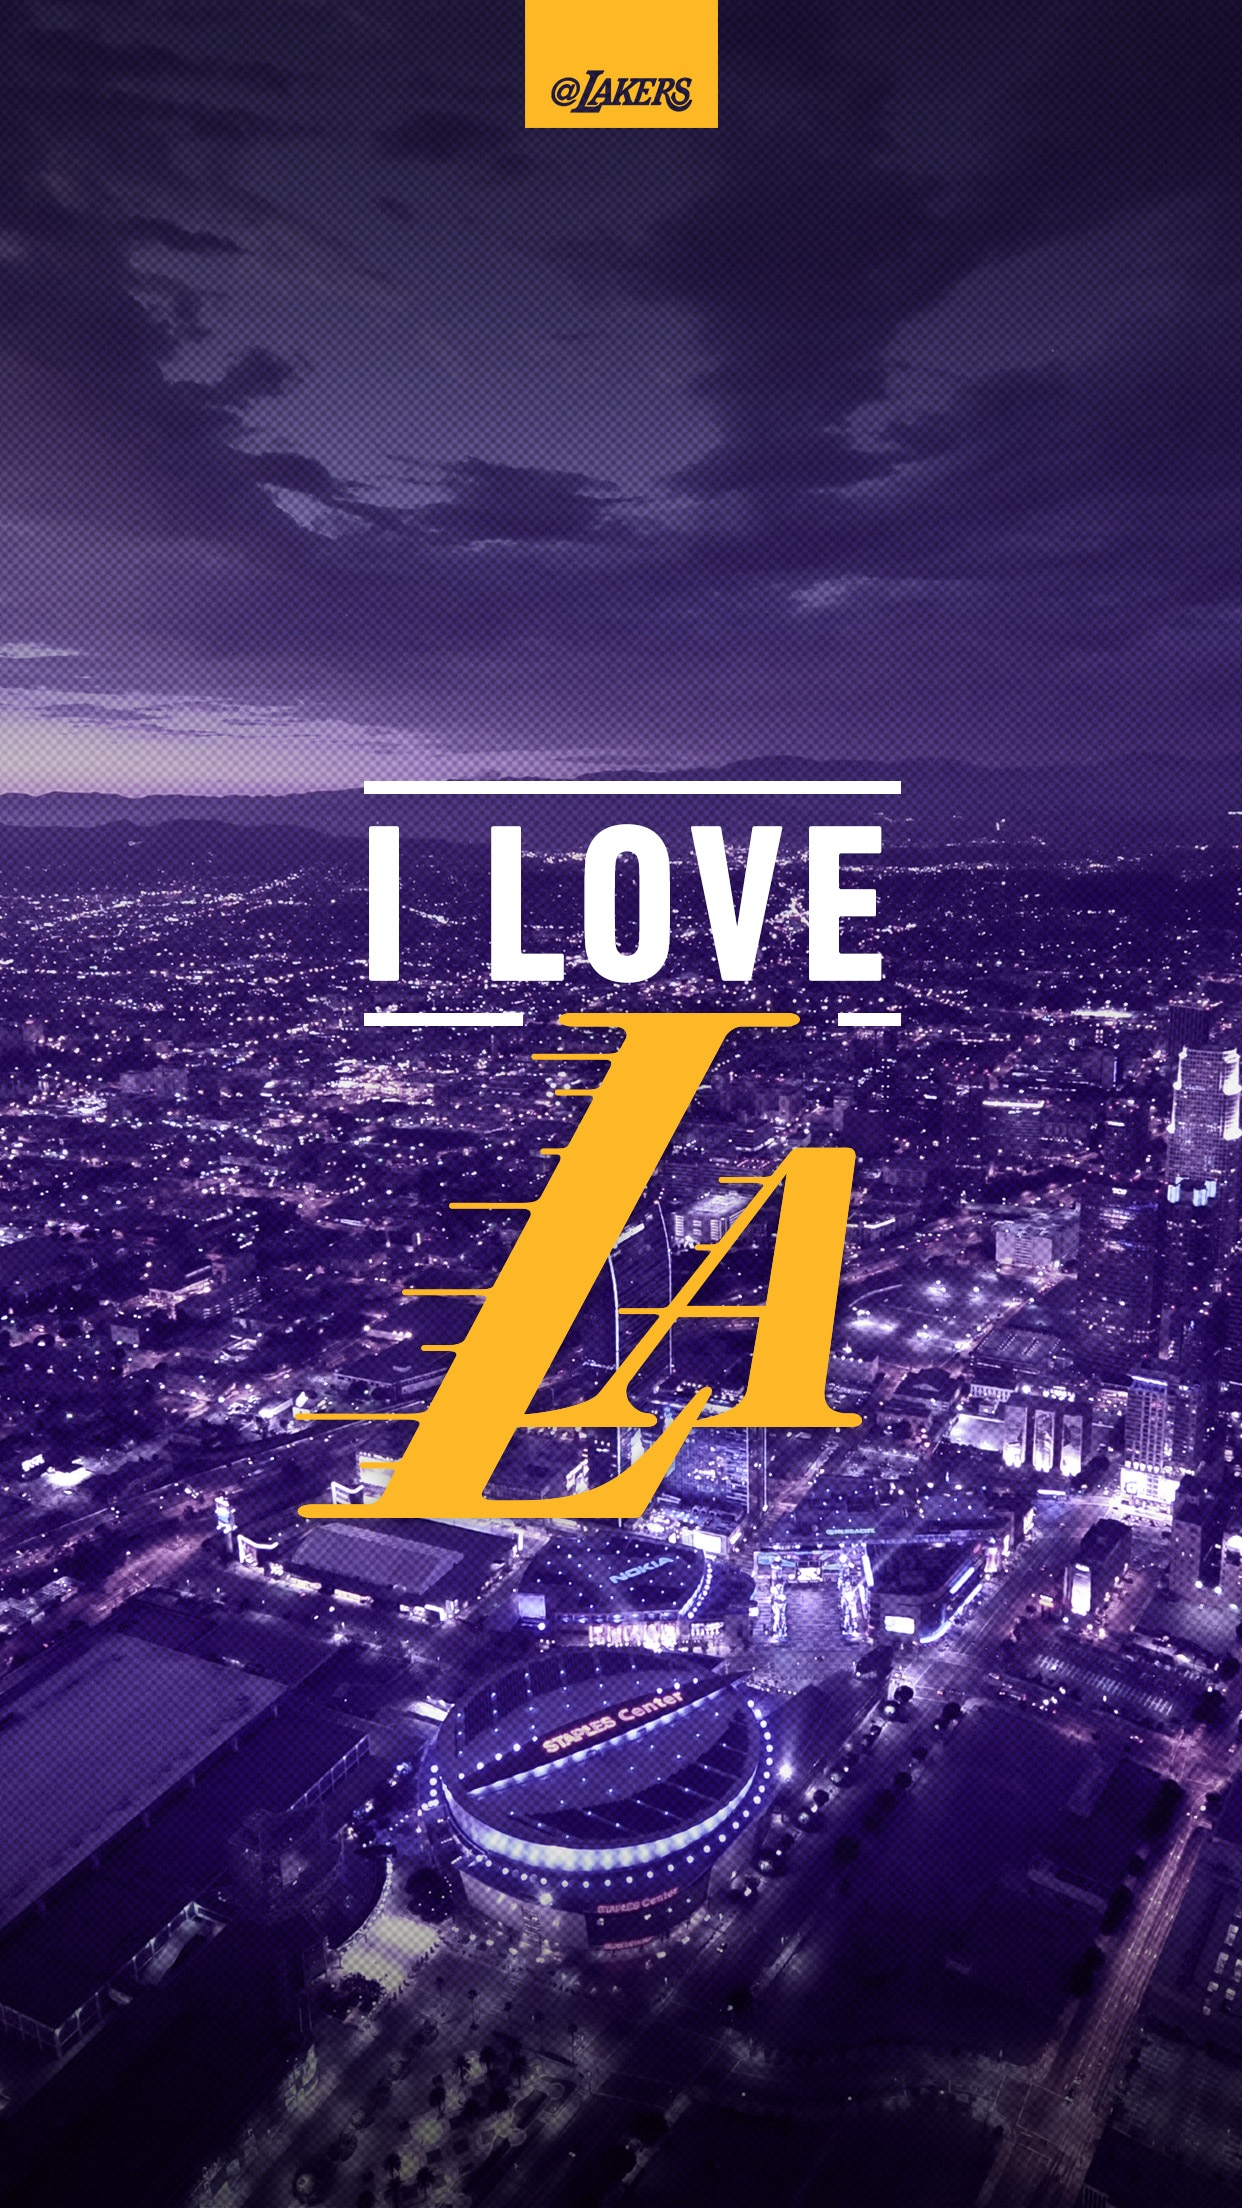 Nike Wallpaper Iphone 6s Lakers Wallpapers And Infographics Los Angeles Lakers